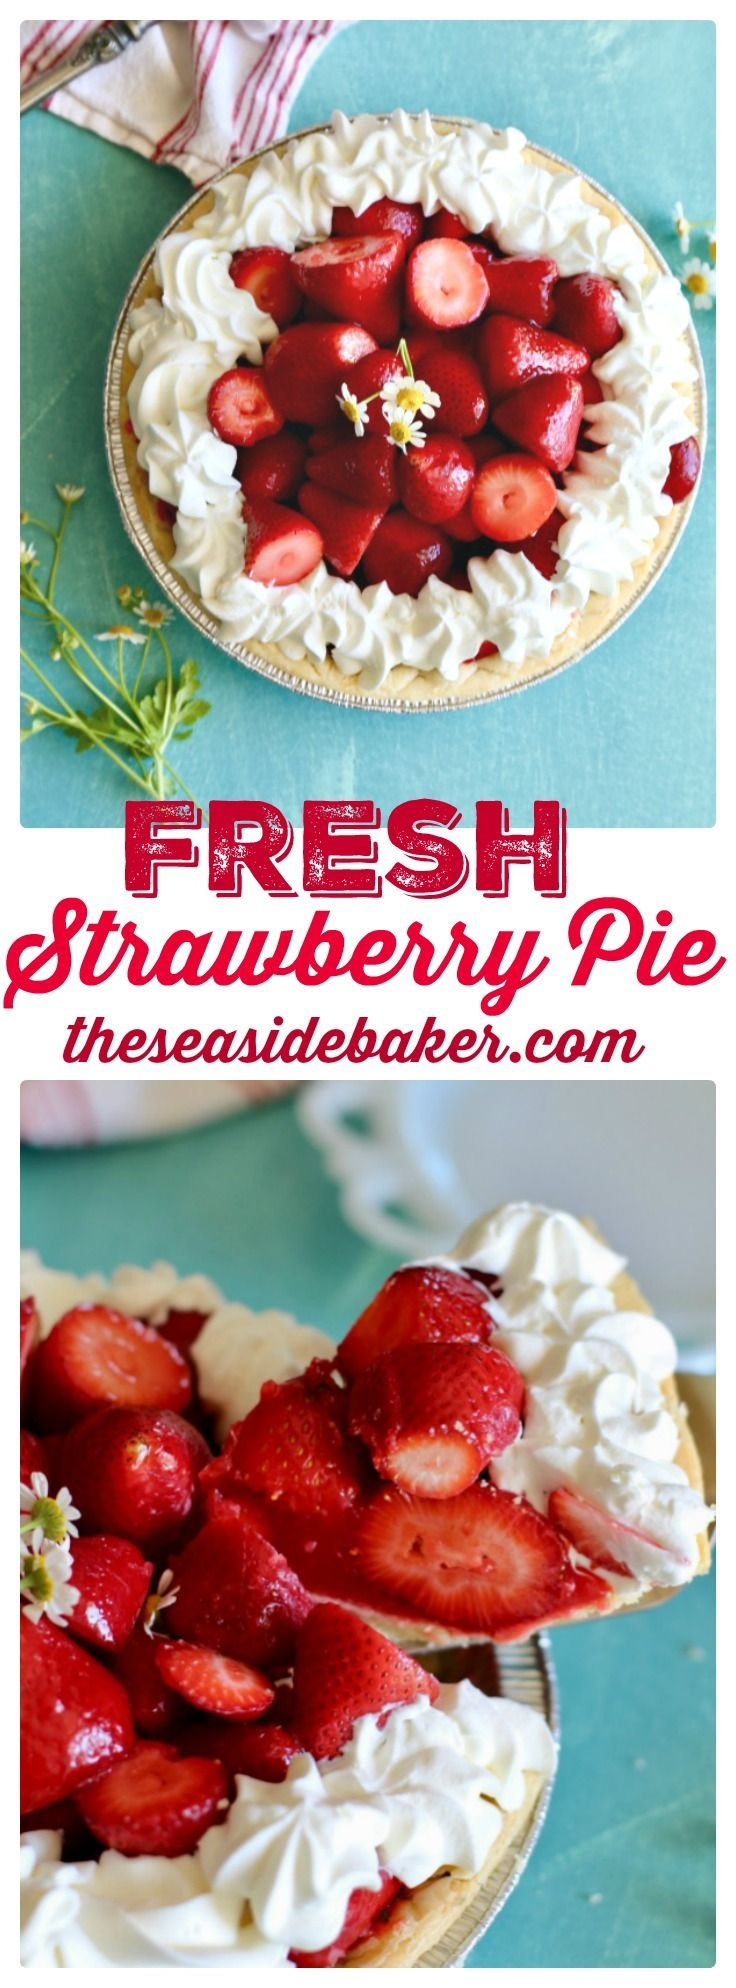 A buttery crust filled to the brim with sweet strawberries and glaze and topped with a dollop of whipped cream